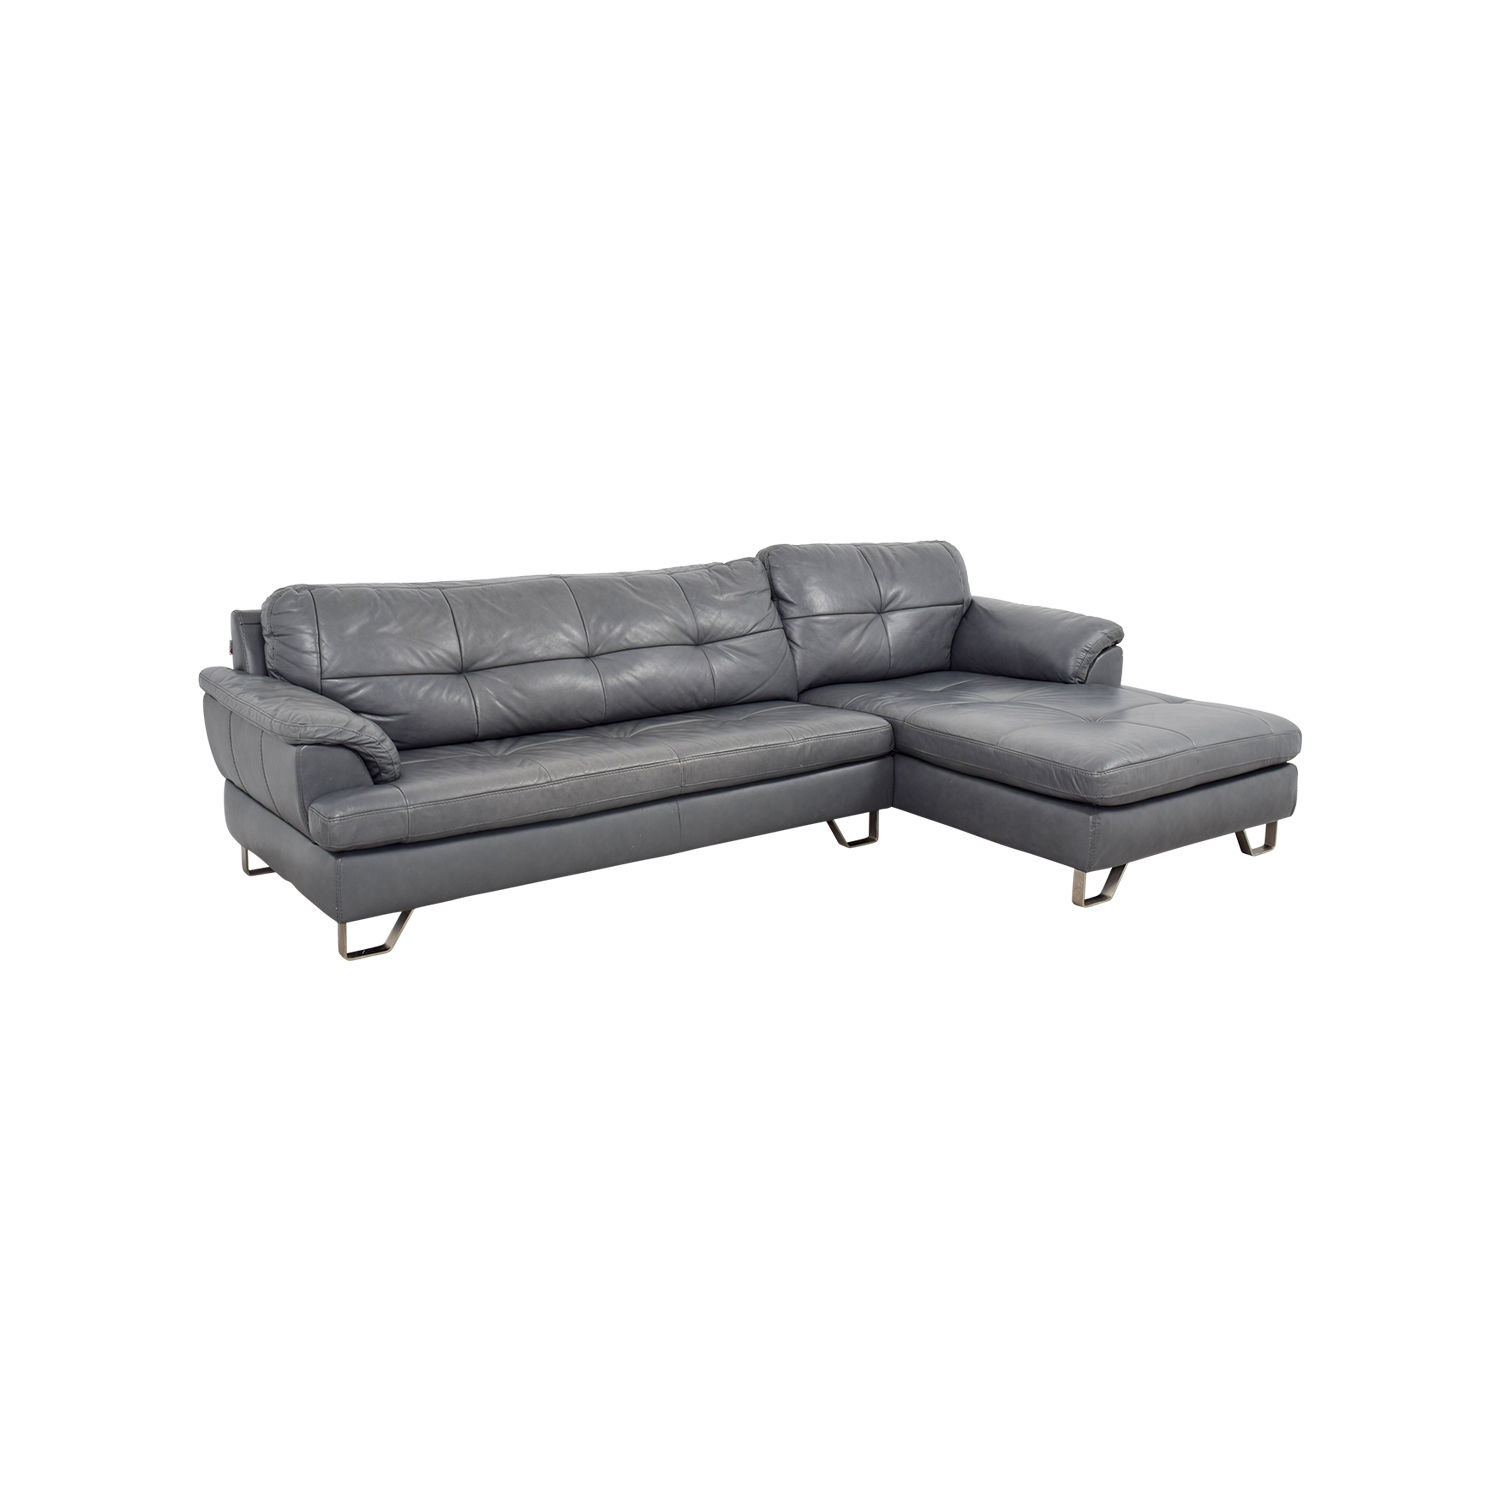 awesome gray sectional sofa ashley furniture gallery-Awesome Gray Sectional sofa ashley Furniture Decoration